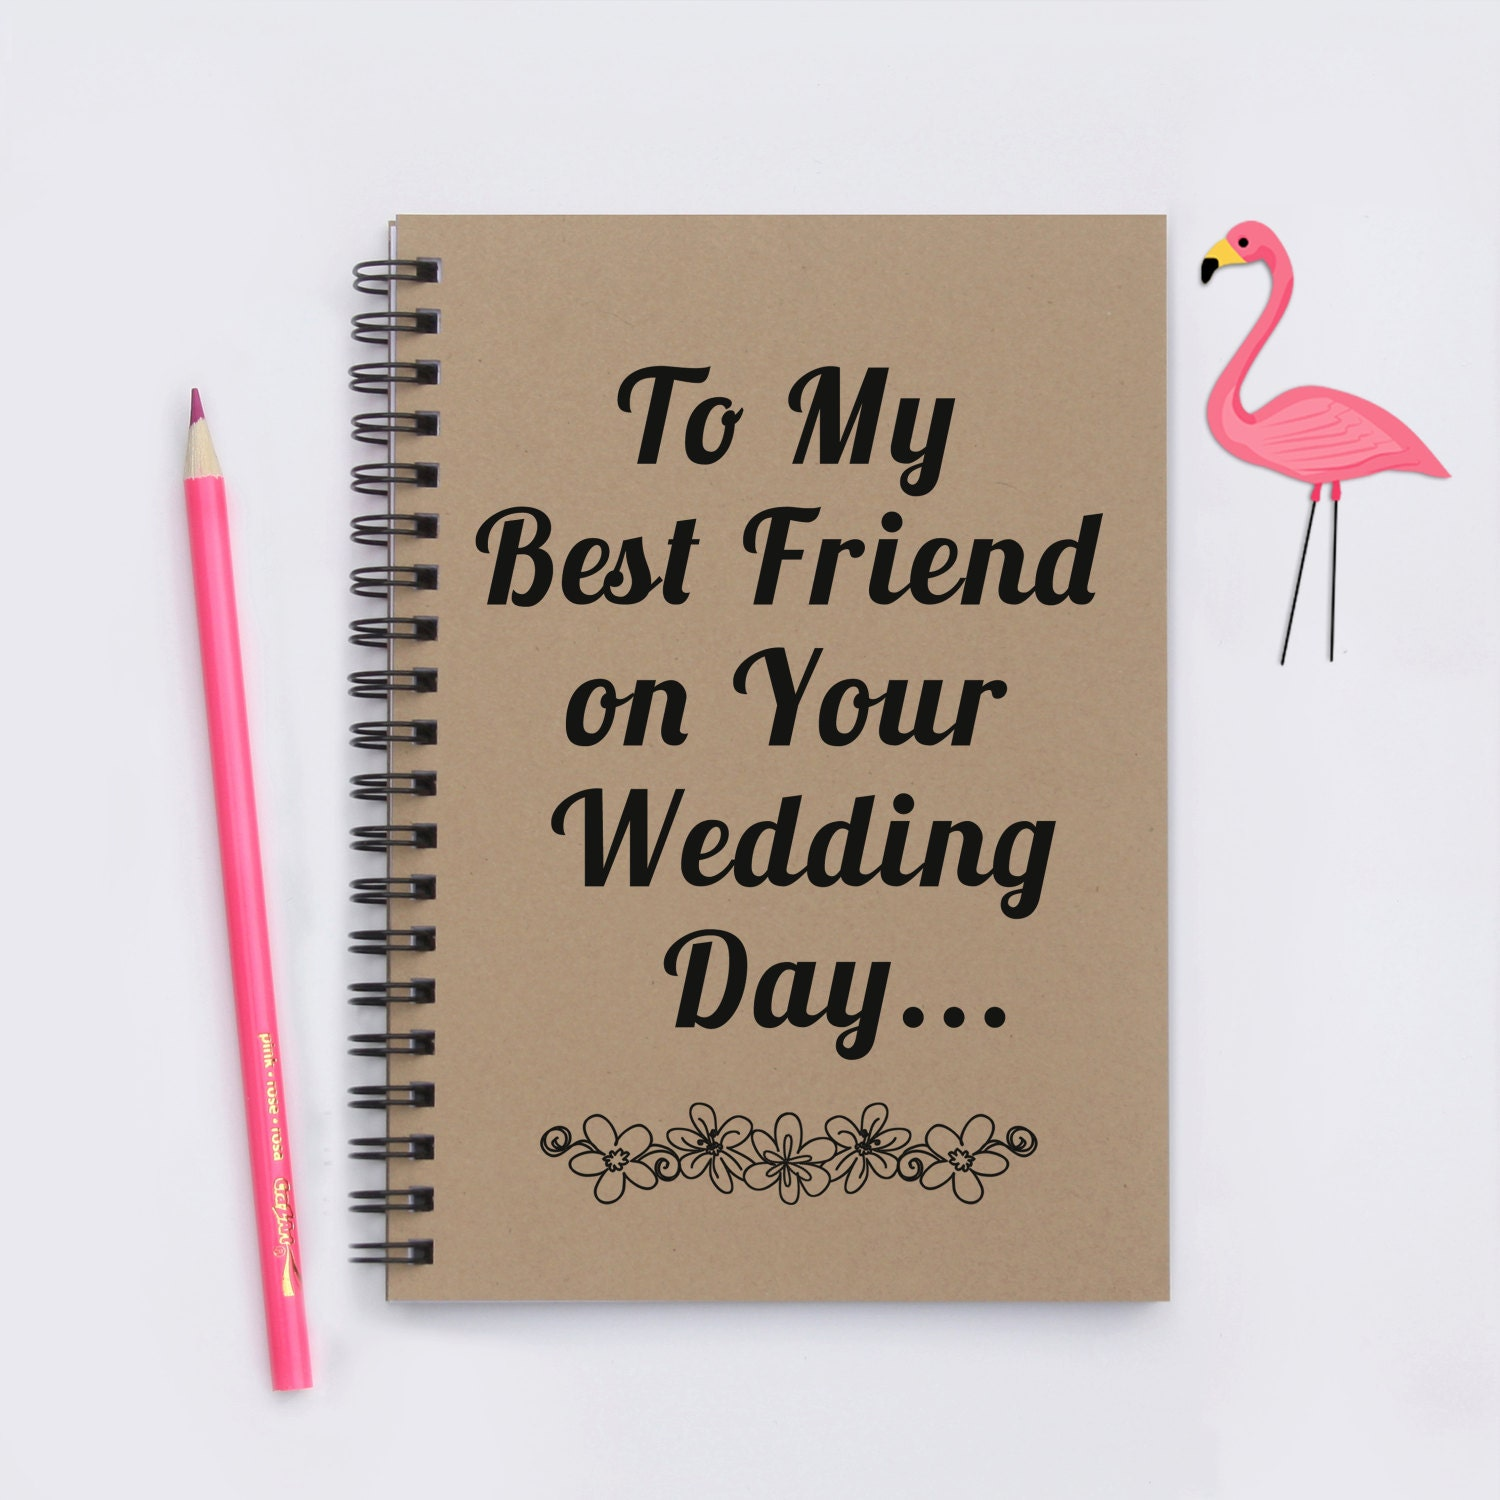 Wedding Gift Ideas For Friend: Best Friend Wedding Gift To My Best Friend On Your Wedding